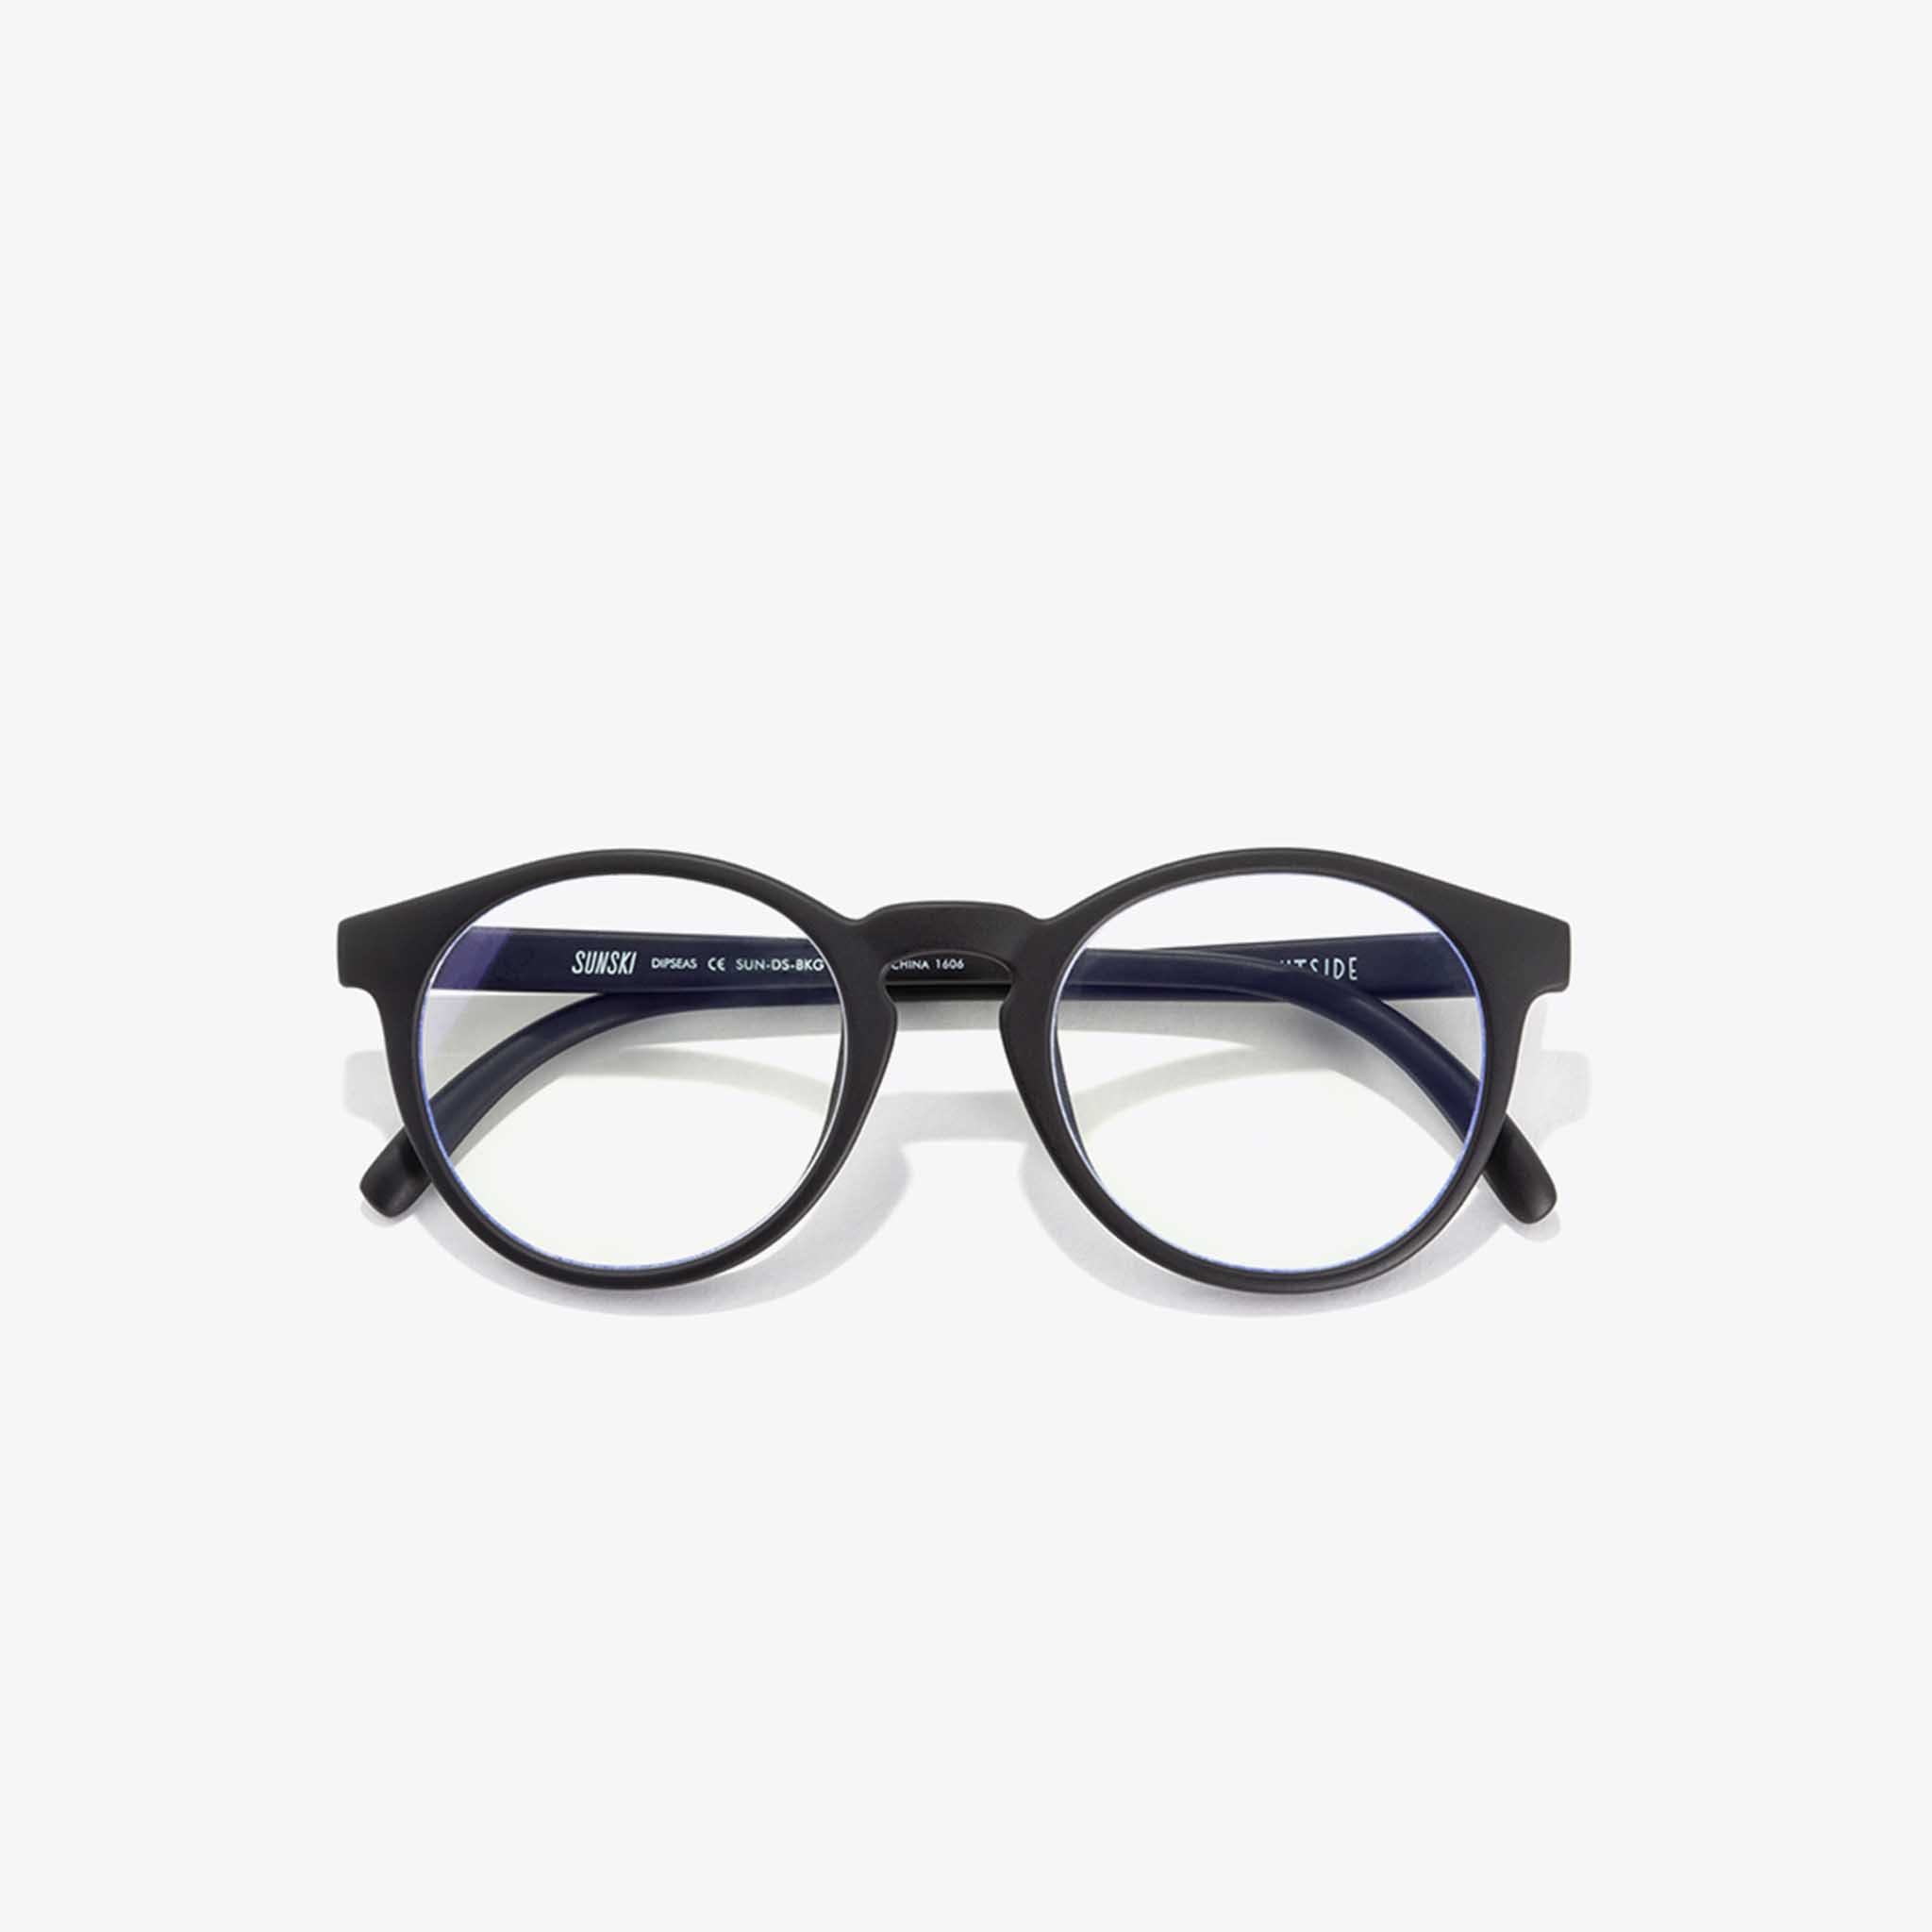 Nisolo - Sunski Blue Light Glasses Dipsea Black Slate